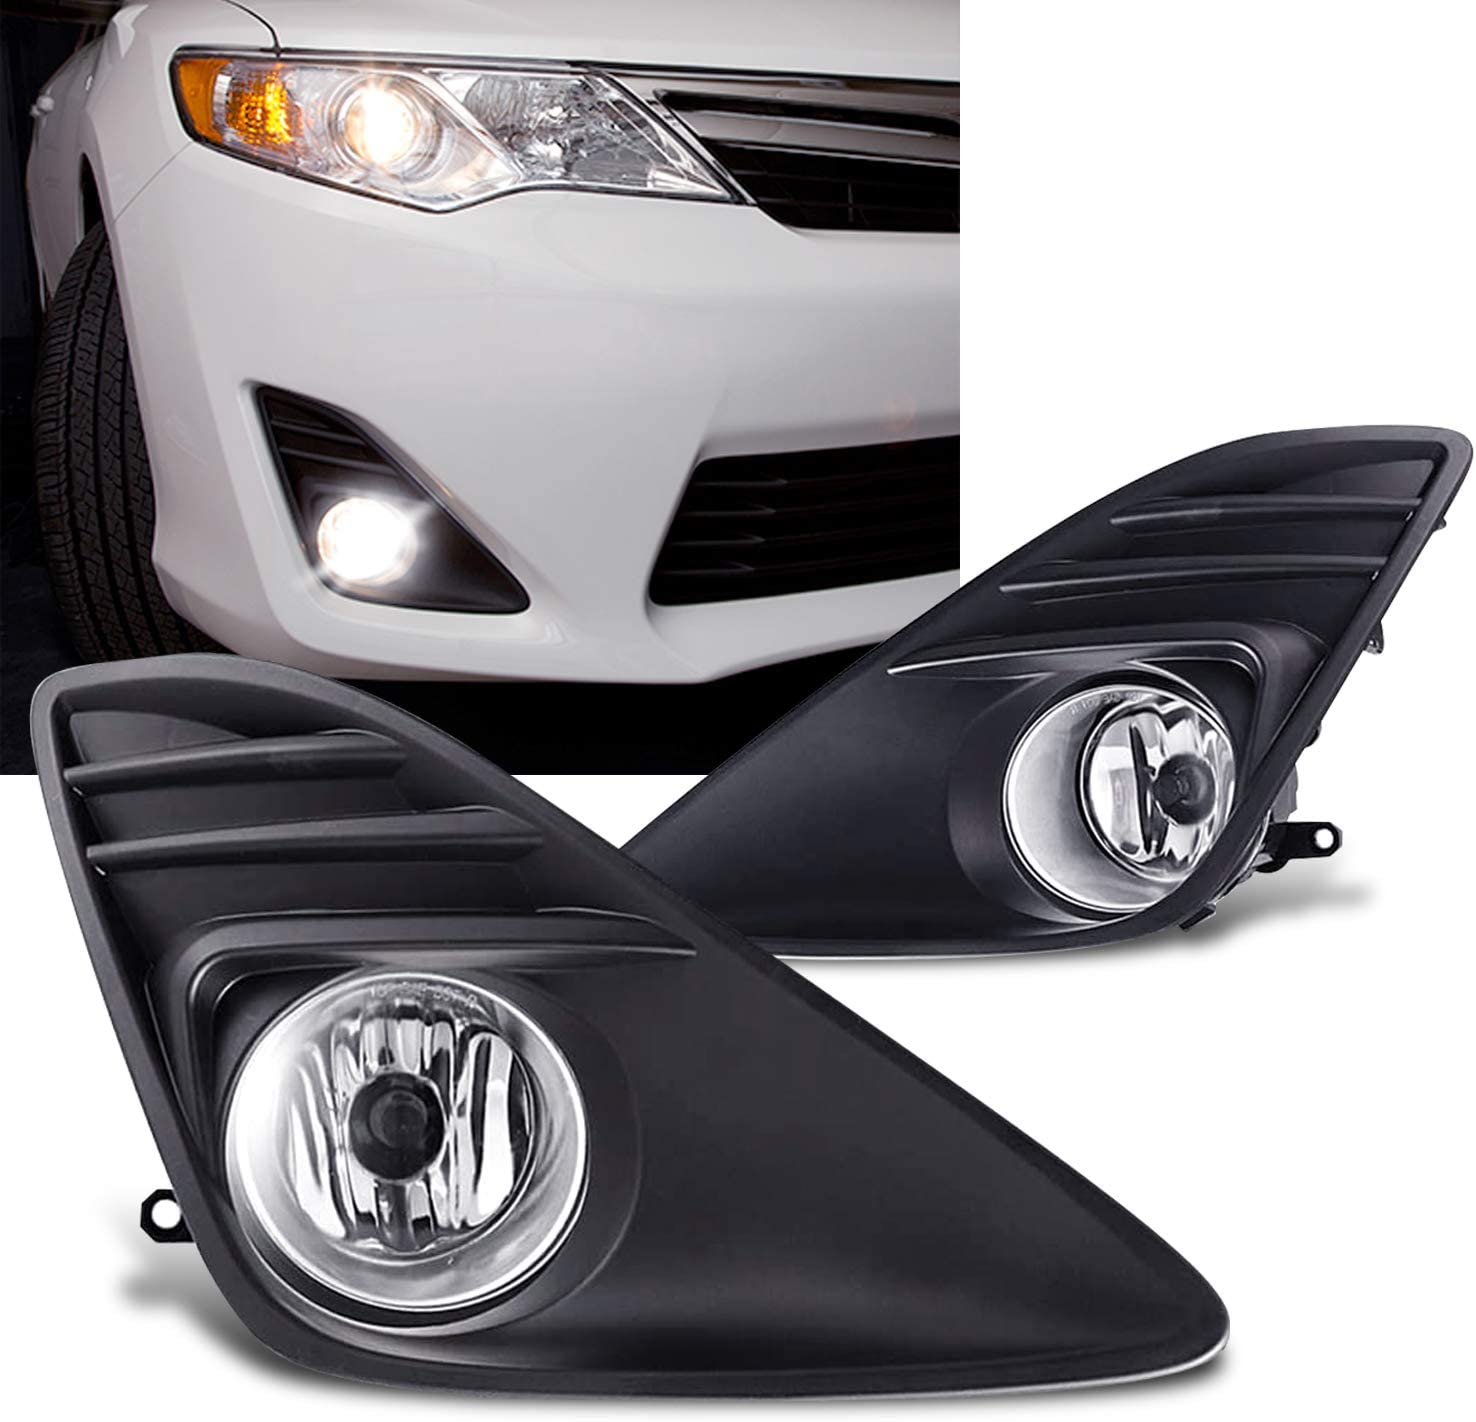 Extrordinary excellence Living Compatible With 2012-2014 Fog Ki Purchase Camry Light